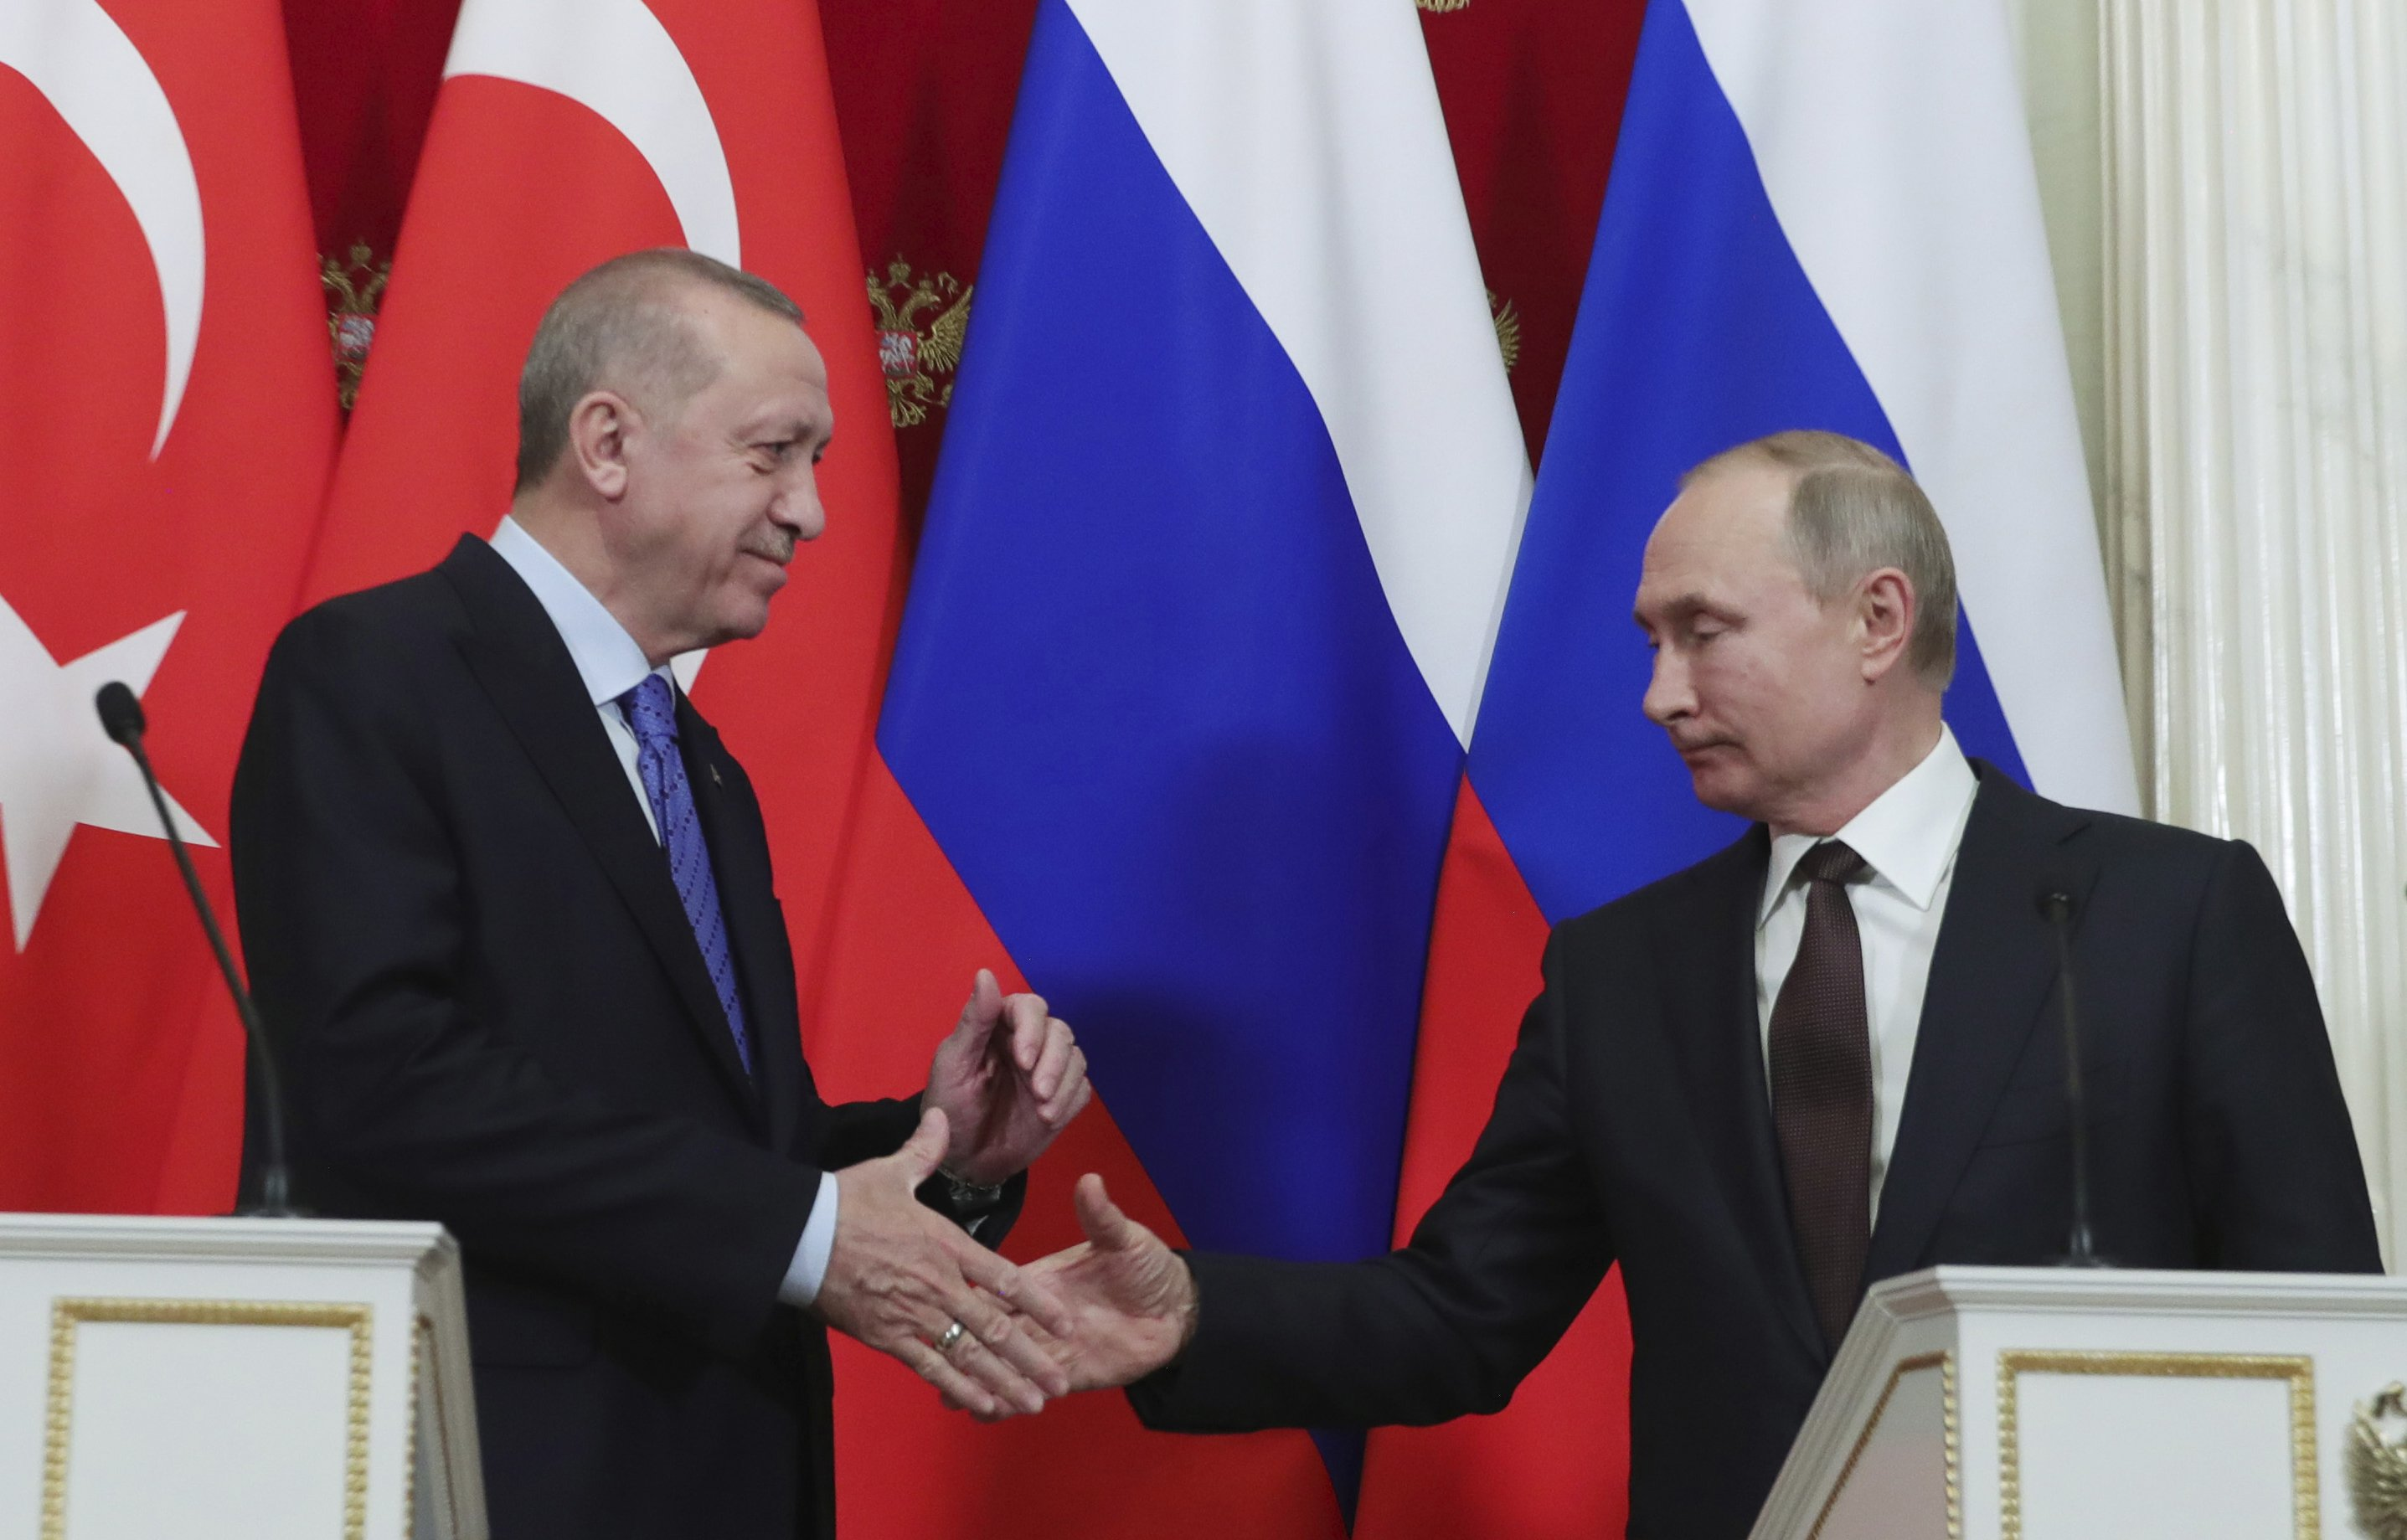 Russia, Turkey agree on strict adherence to Nagorno-Karabakh ceasefire as tensions rise